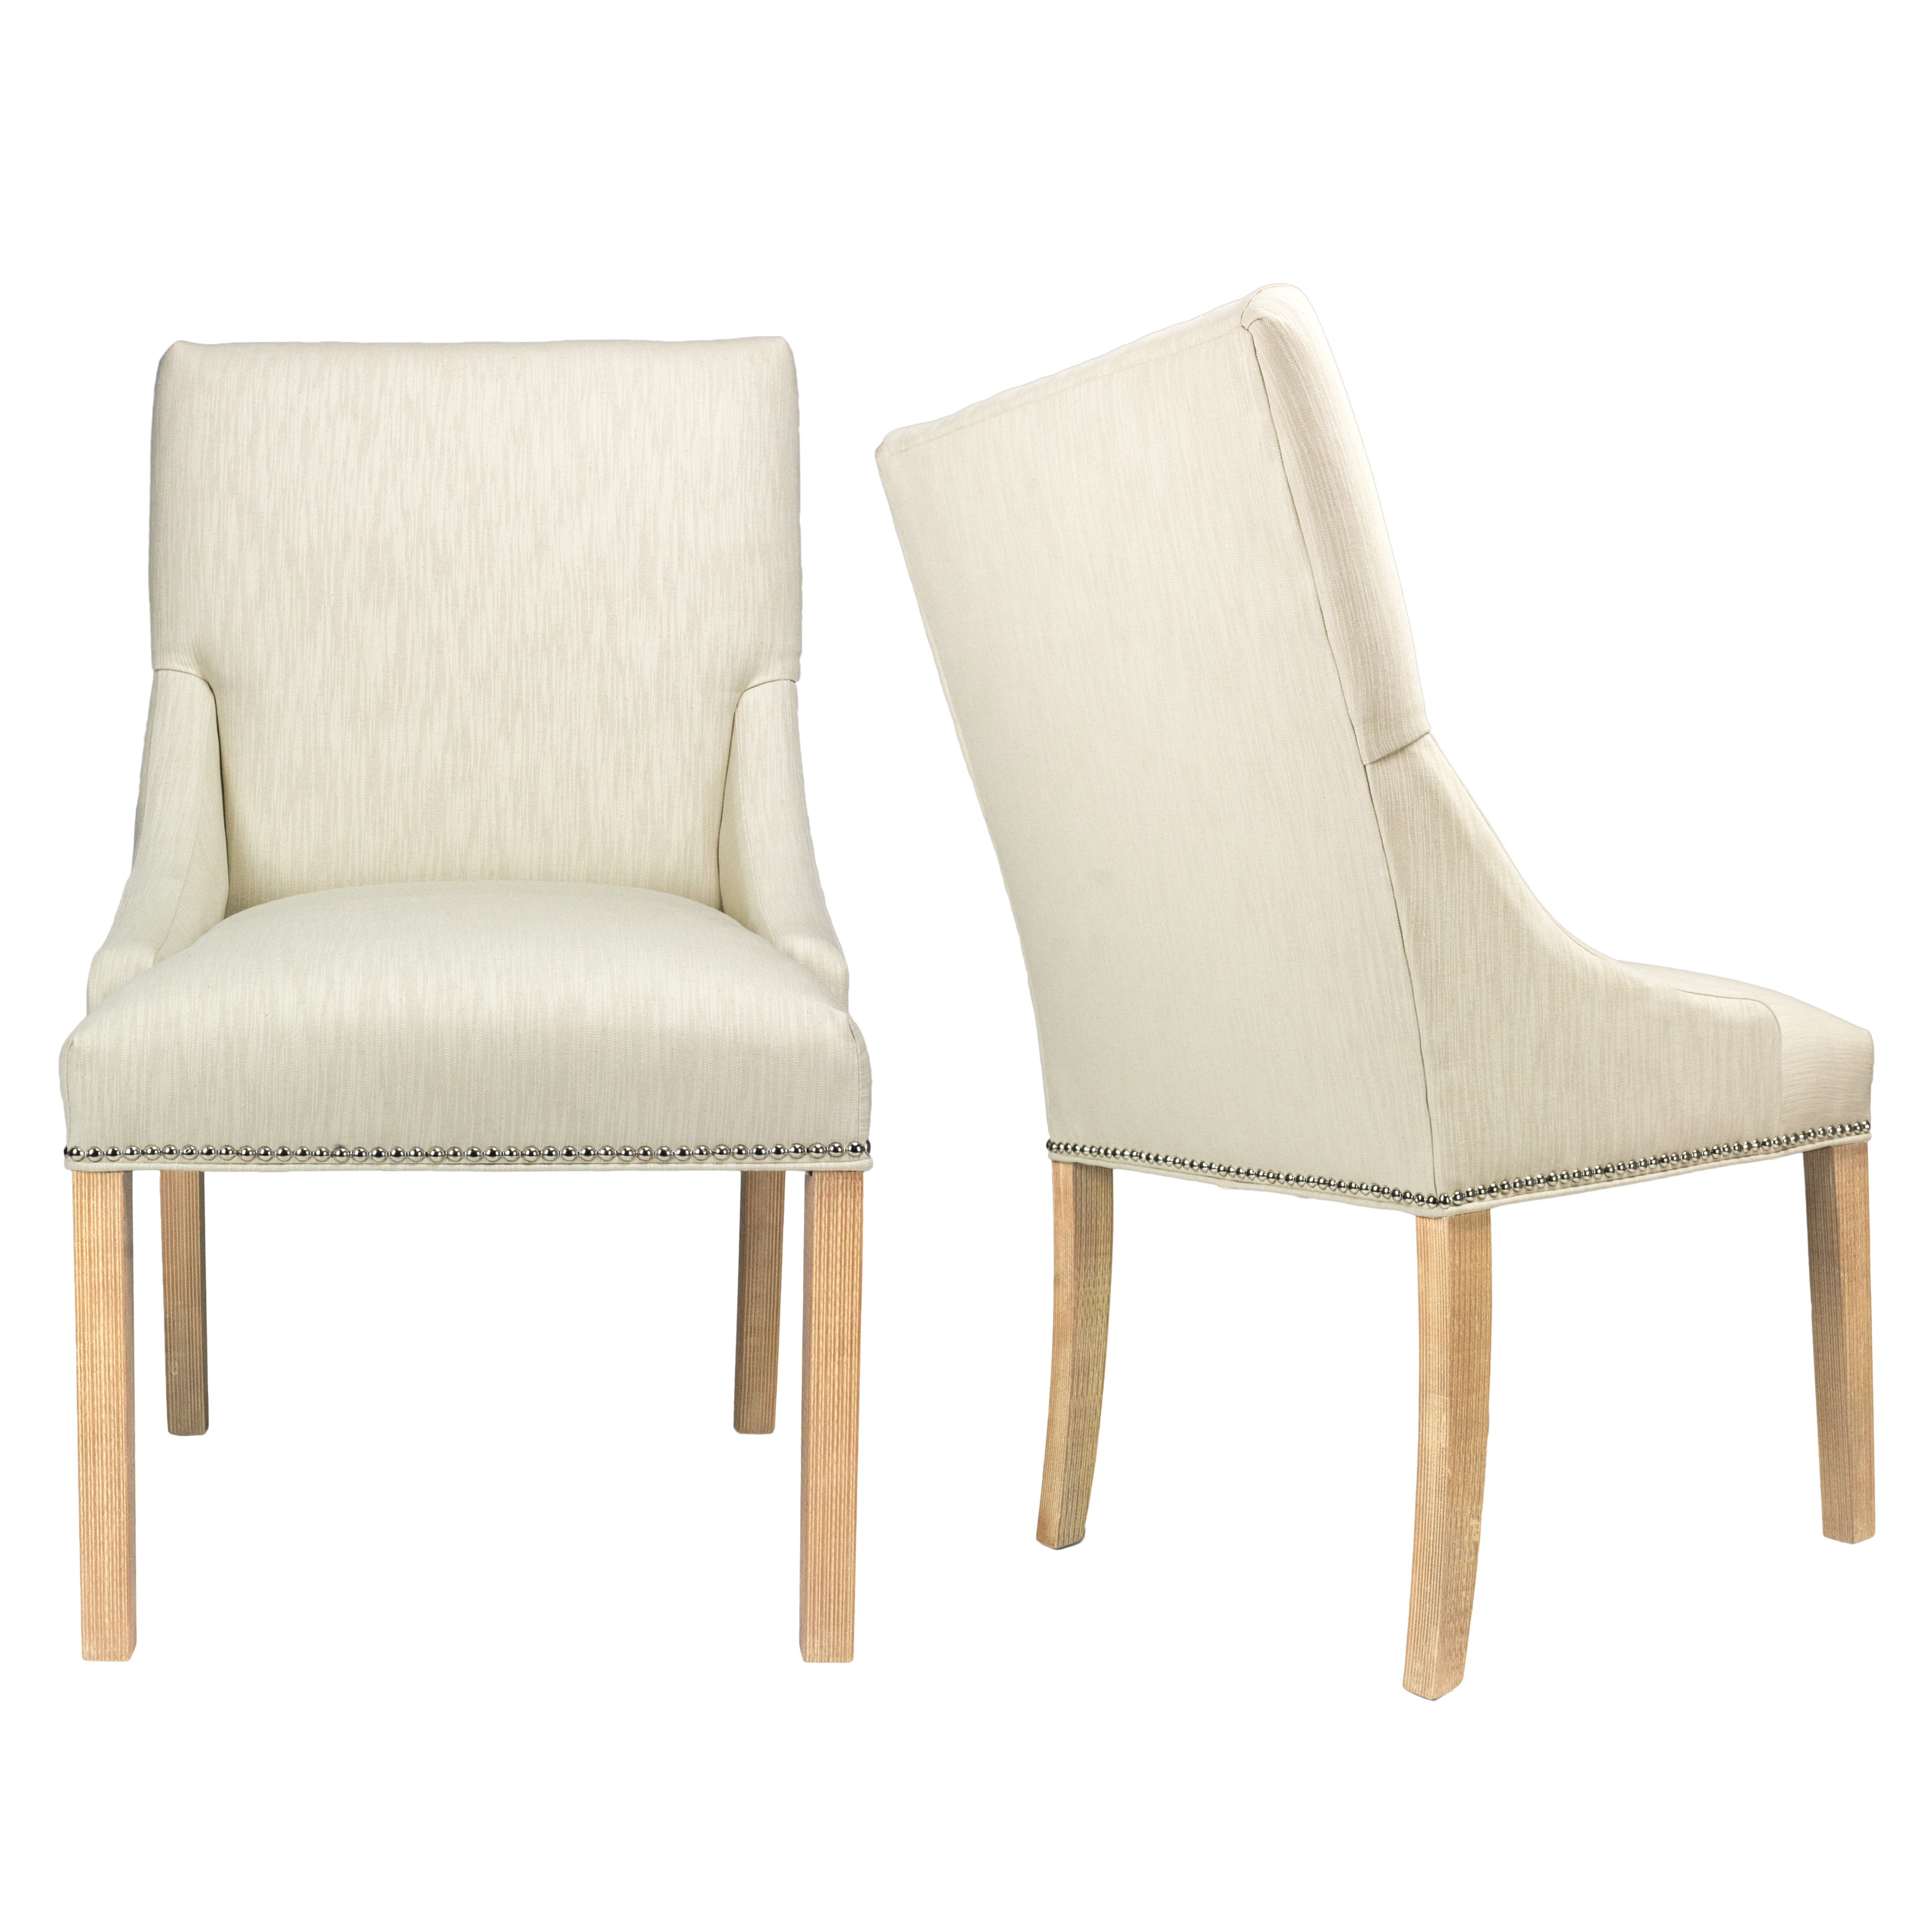 Phenomenal Marie Off White Upholstered Dining Chairs With Wood Legs Set Of 2 Ncnpc Chair Design For Home Ncnpcorg